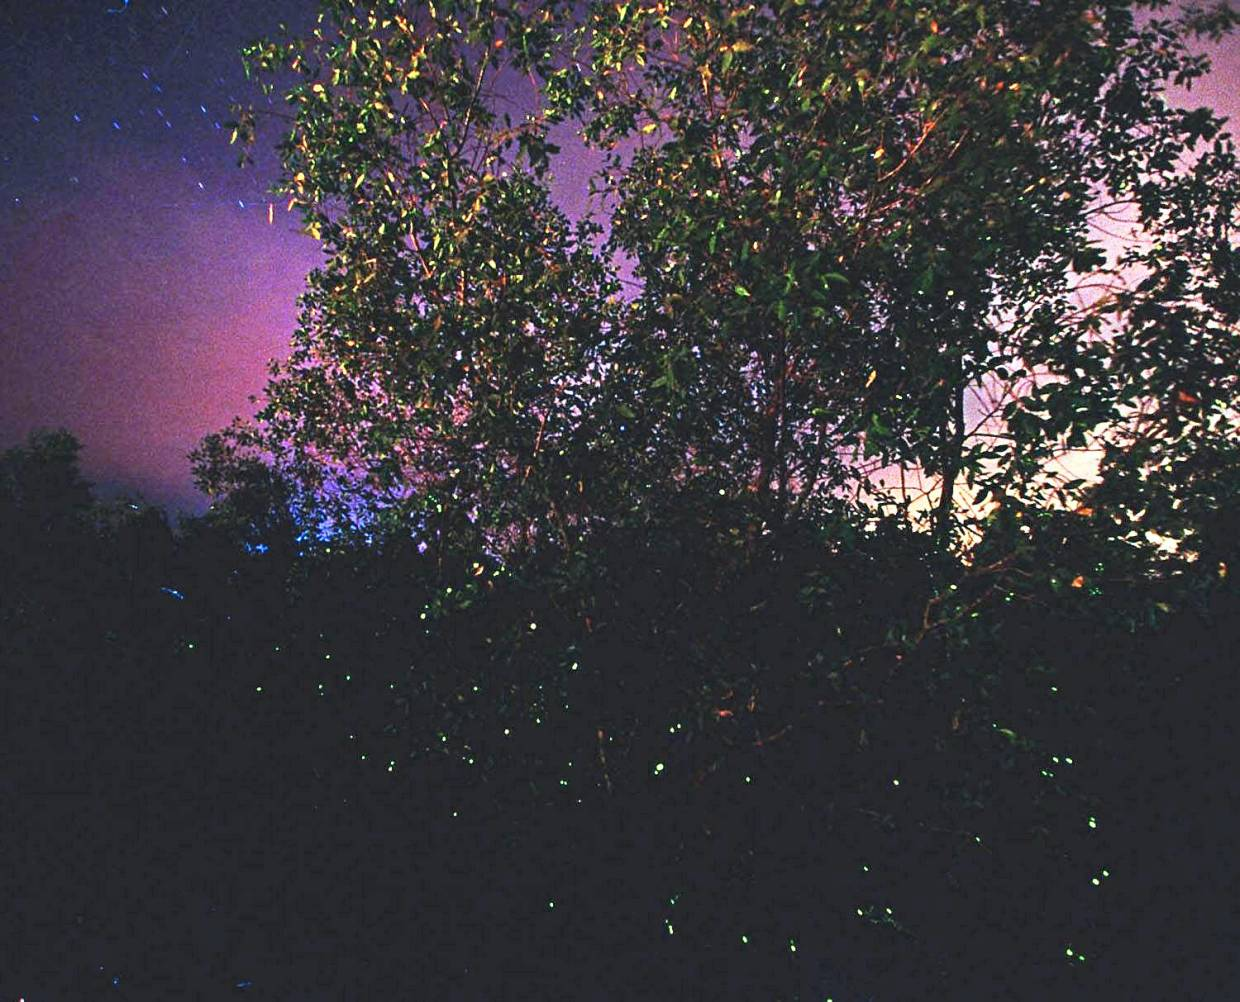 Fireflies can be found in several places in Selangor, but their numbers are dwindling due to serious environmental issues like pollution. — Filepic